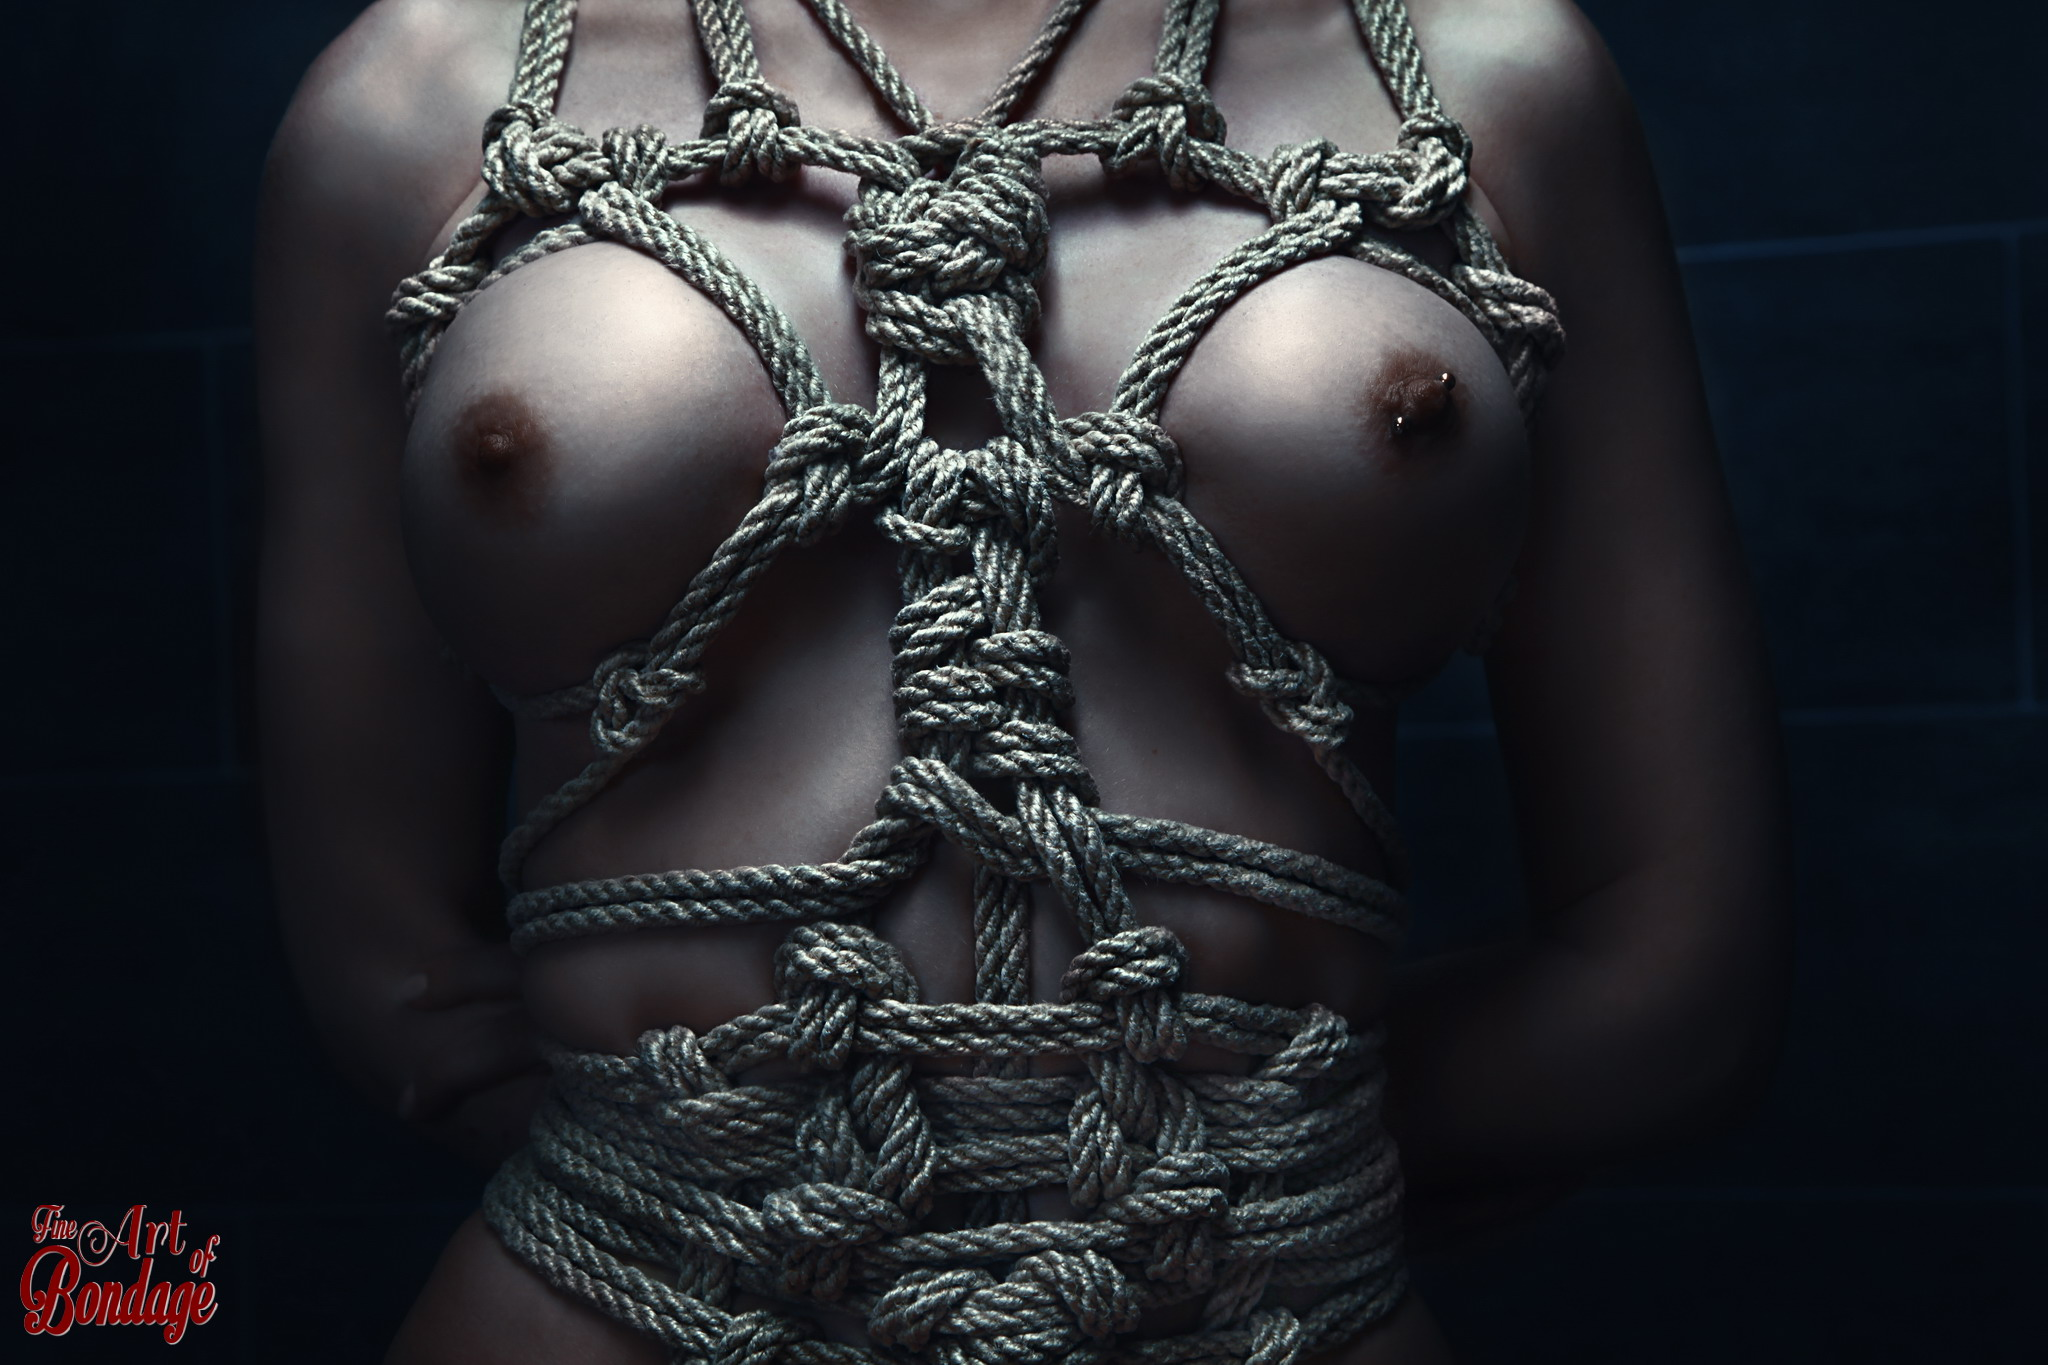 girl bondage art jpg 1080x810